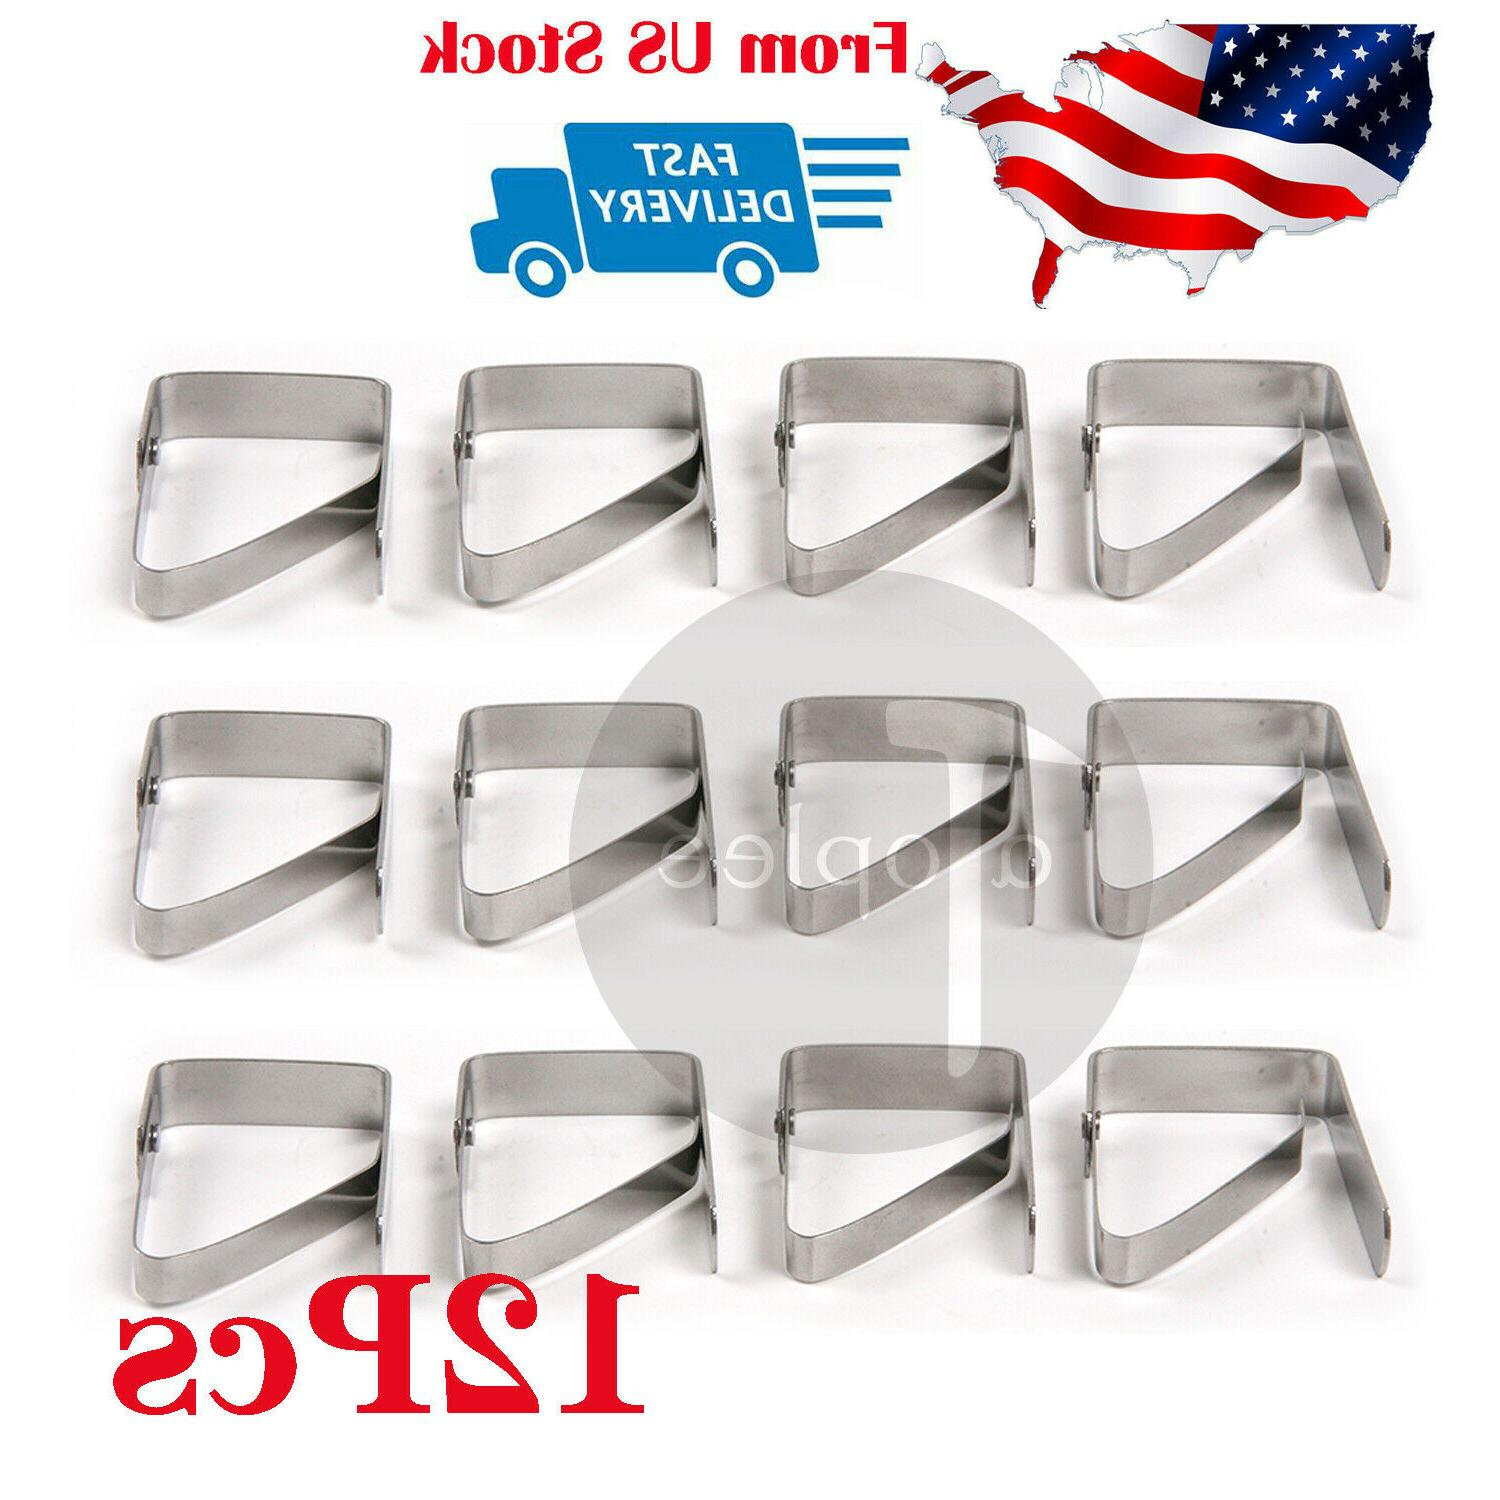 12Pcs Stainless Steel Tablecloth Table Cover Clips Holder Cl